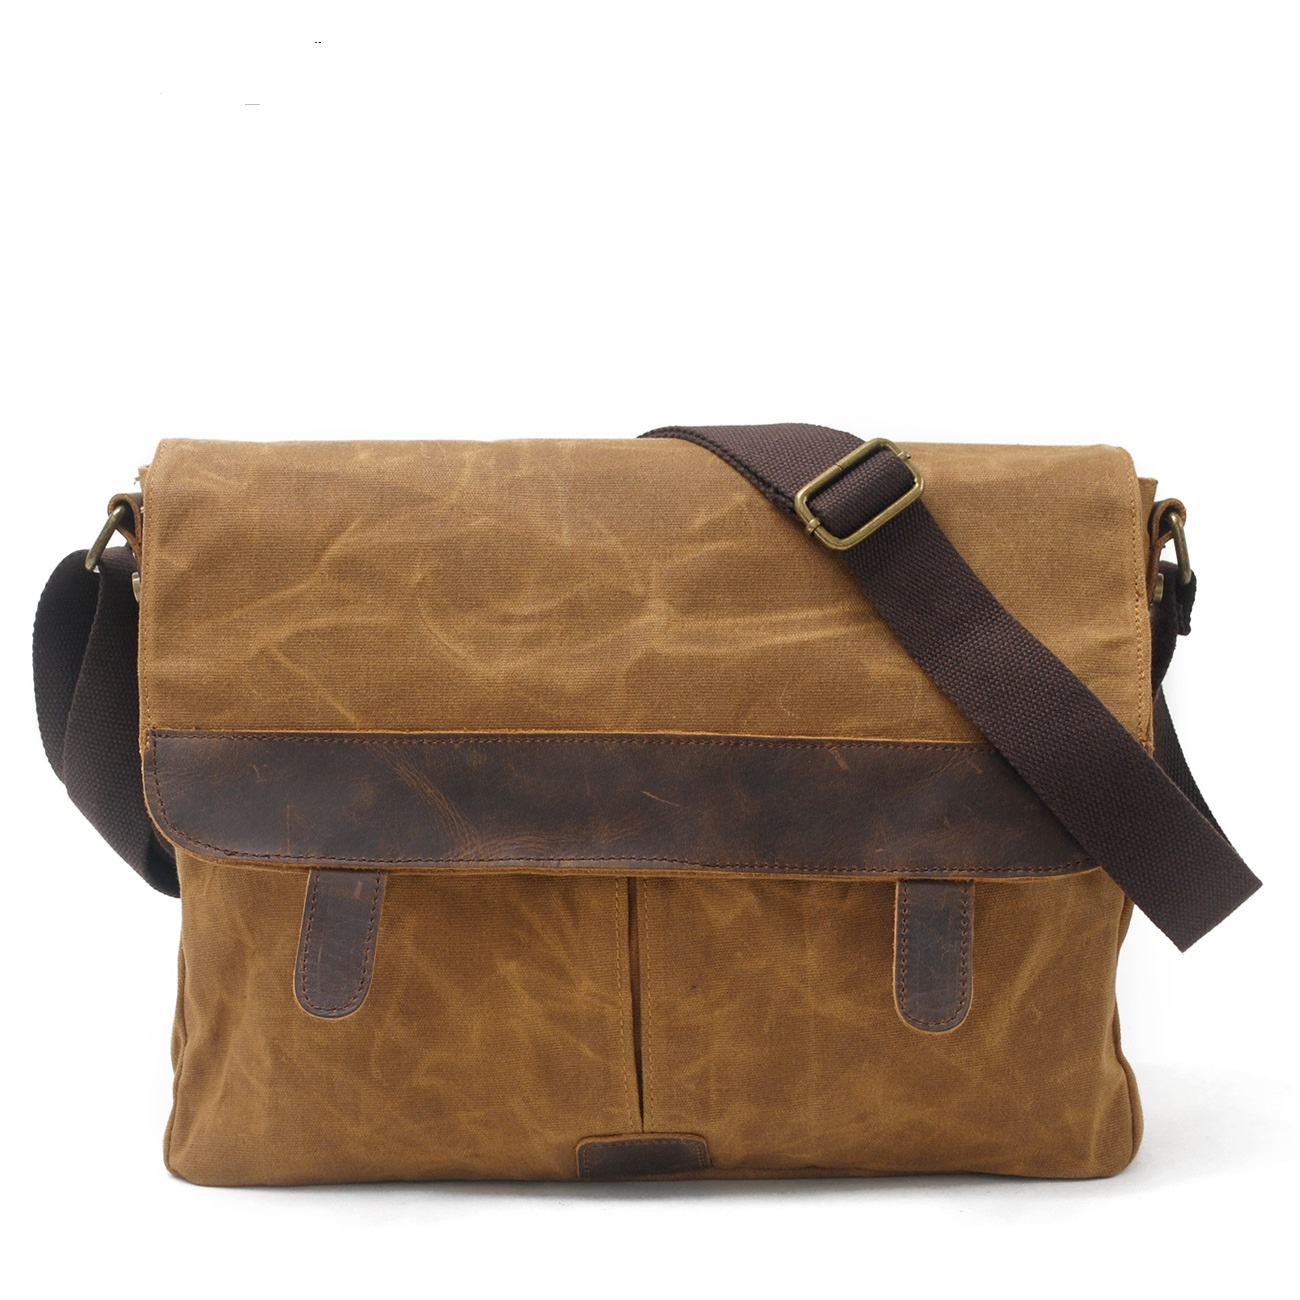 9158 Wholesale Europe and United States Men Bag Wax Canvas Crazy Leather Crossbody  Bag Waterproof Canvas Shoulder Bag 5dc59b2165a75